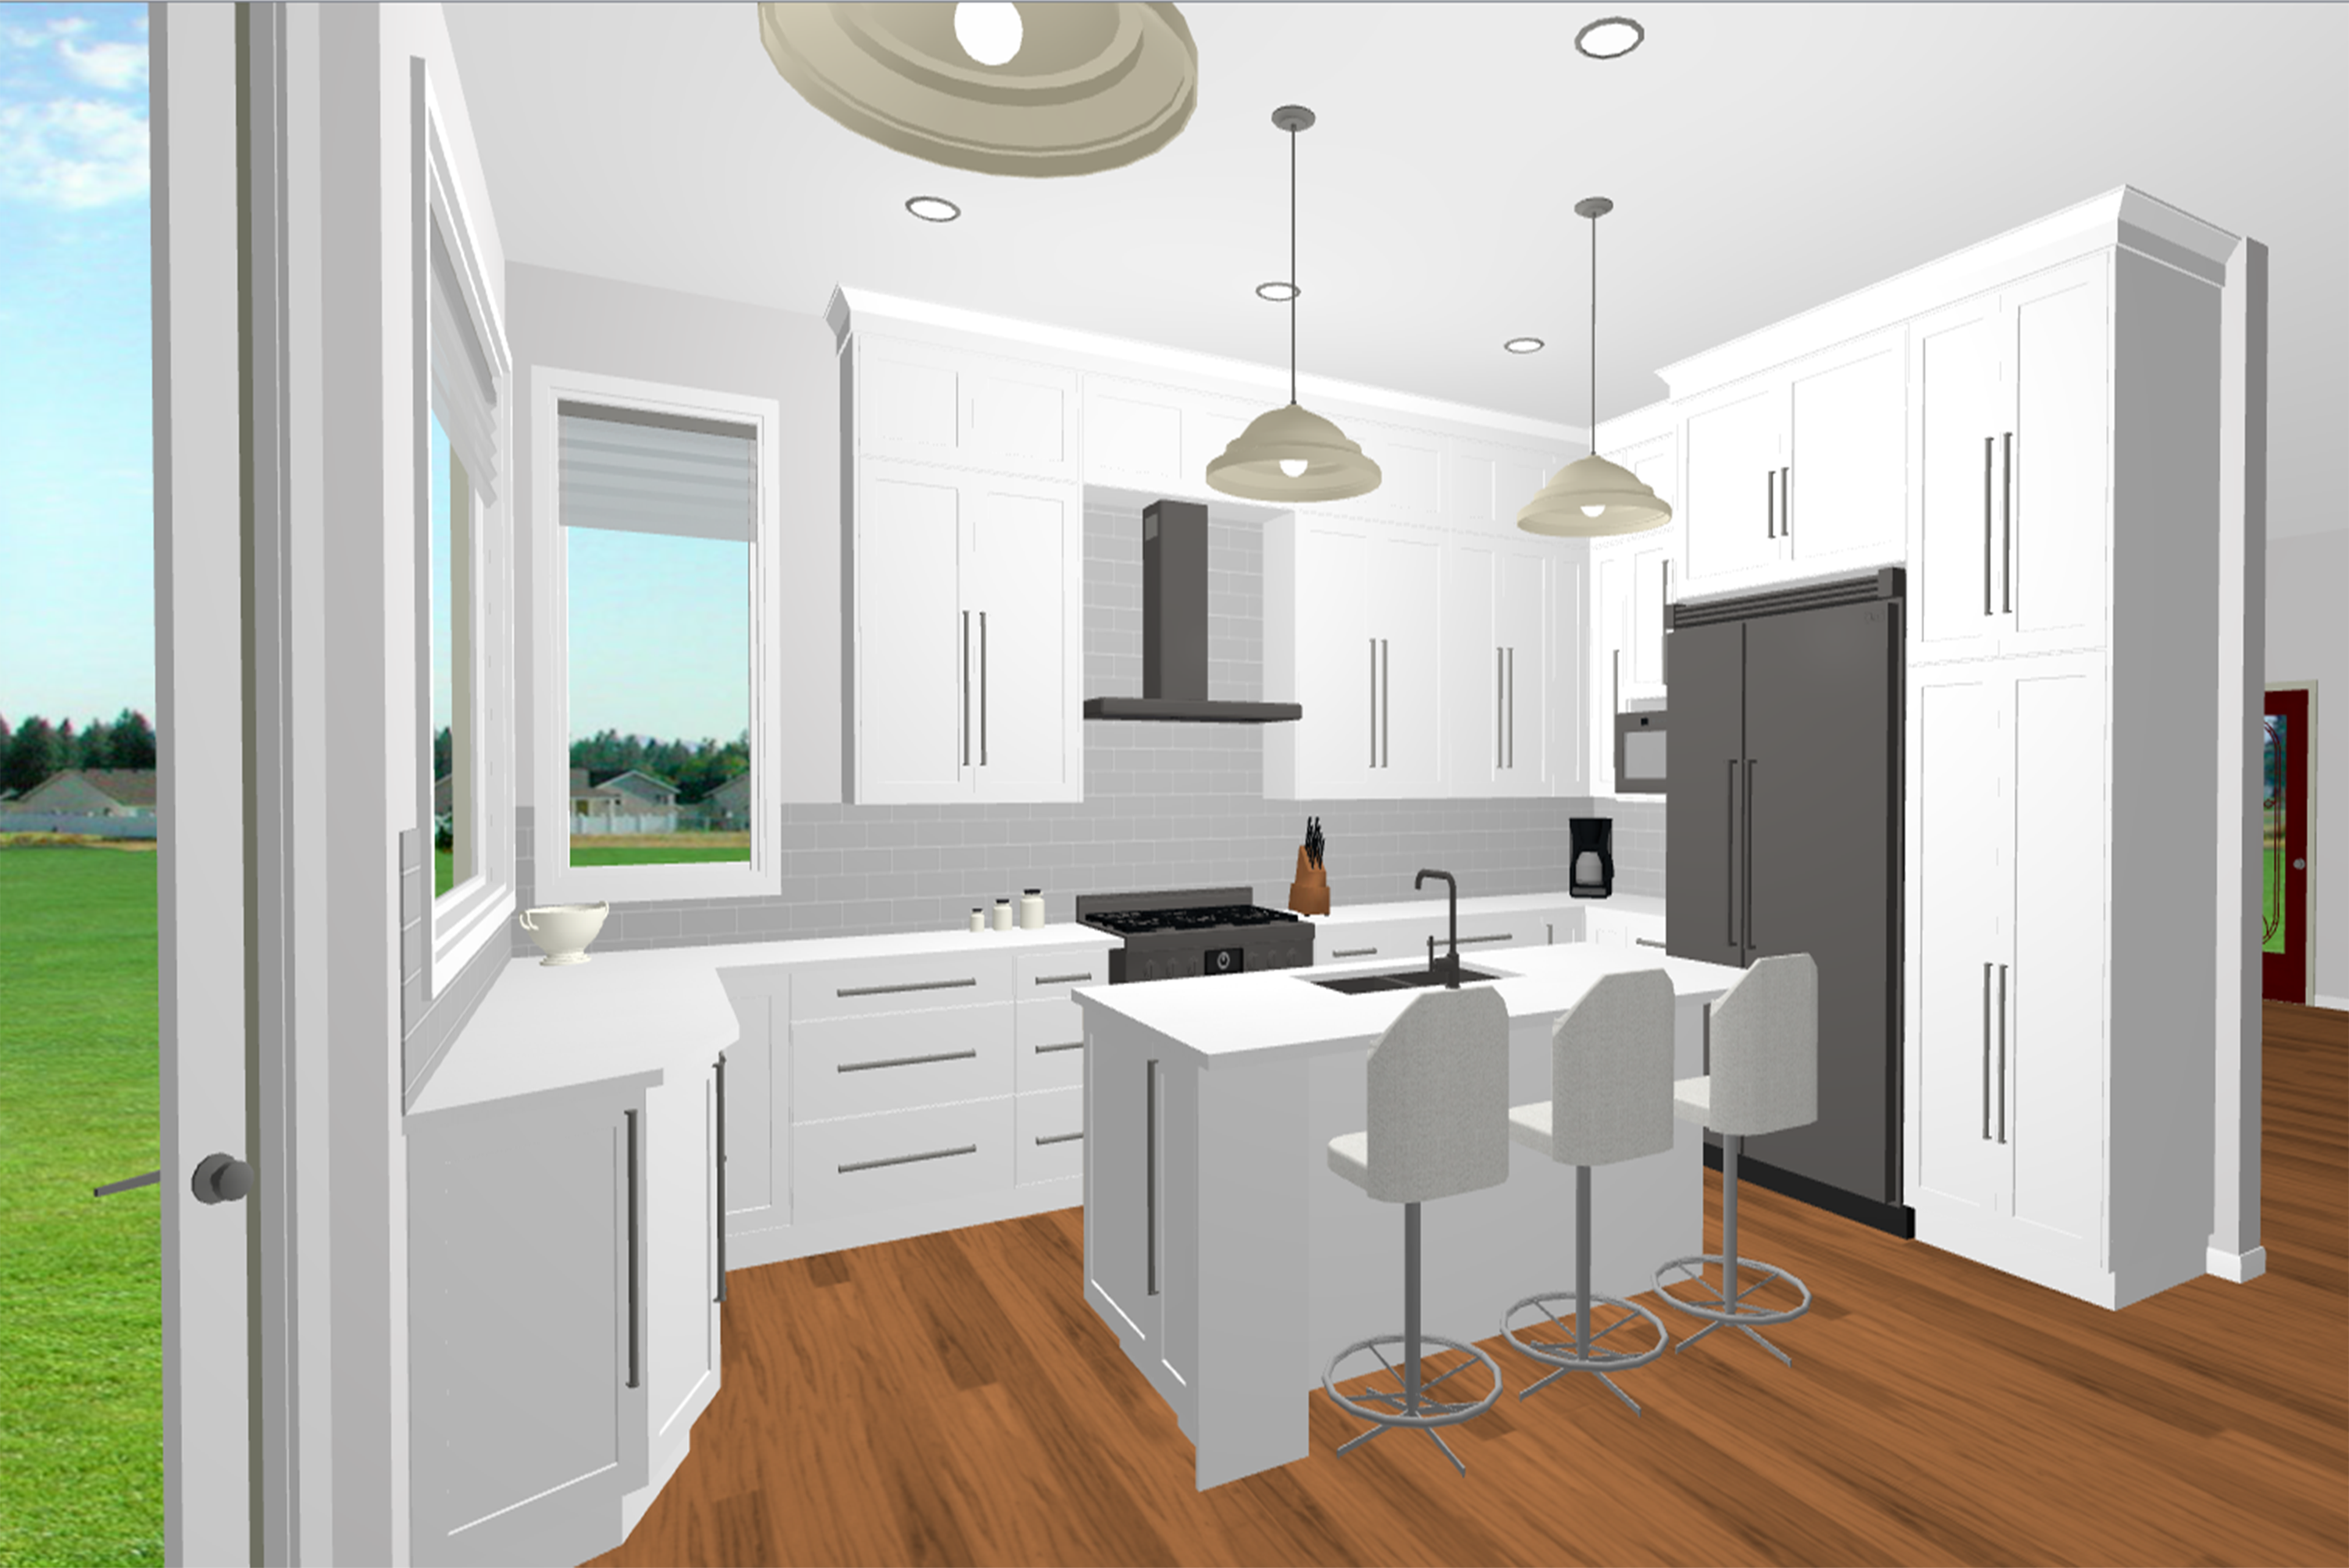 https://artisankitchens.ca/wp-content/uploads/2018/08/Artisan-Kitchens_Virtual-Reno-1.png